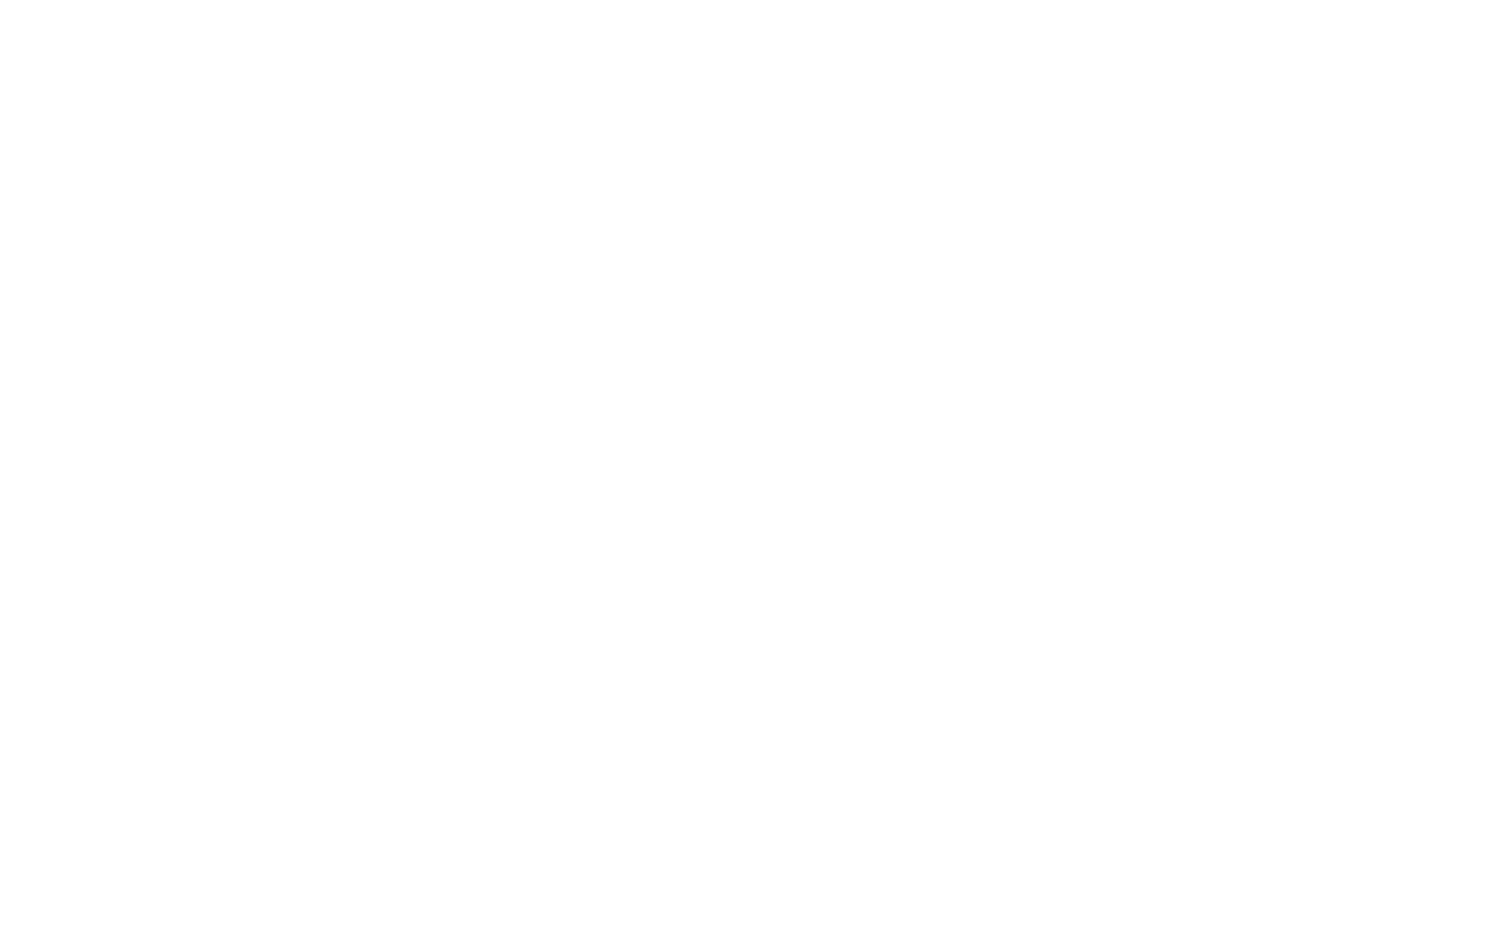 Fly Luxury